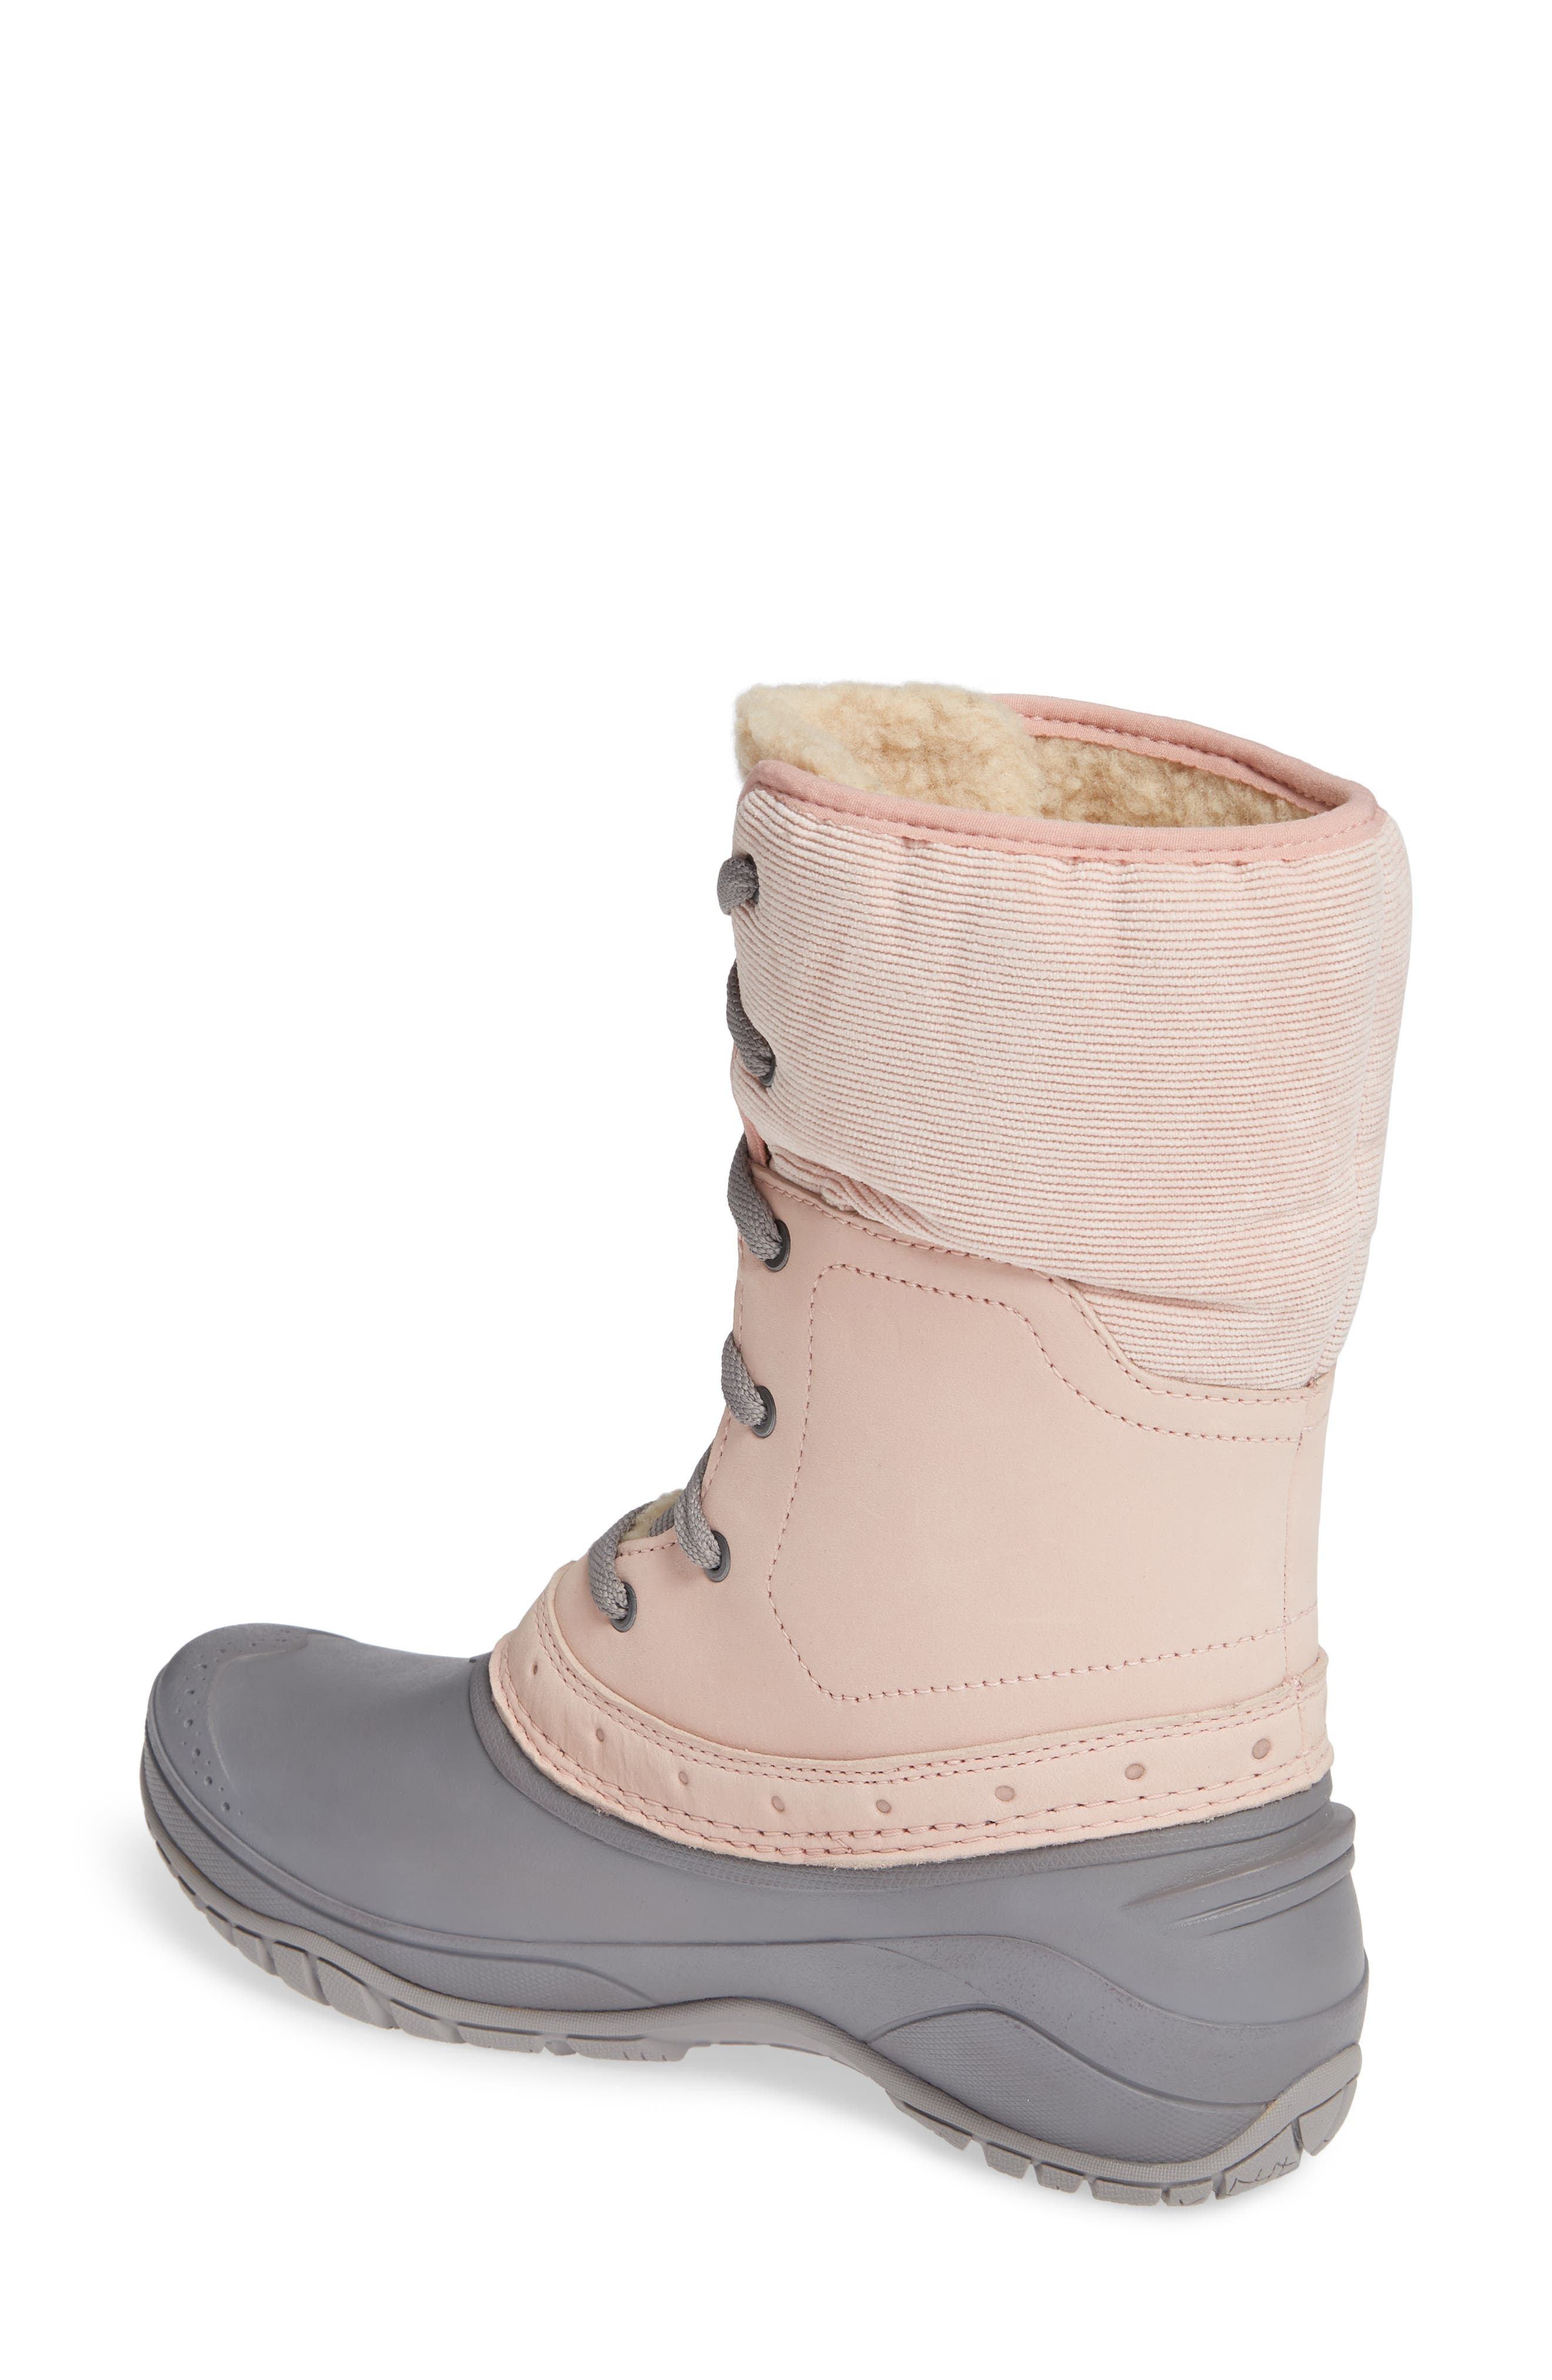 Shellista Roll Cuff Waterproof Insulated Winter Boot,                             Alternate thumbnail 2, color,                             MISTY ROSE/ Q-SILVER GREY